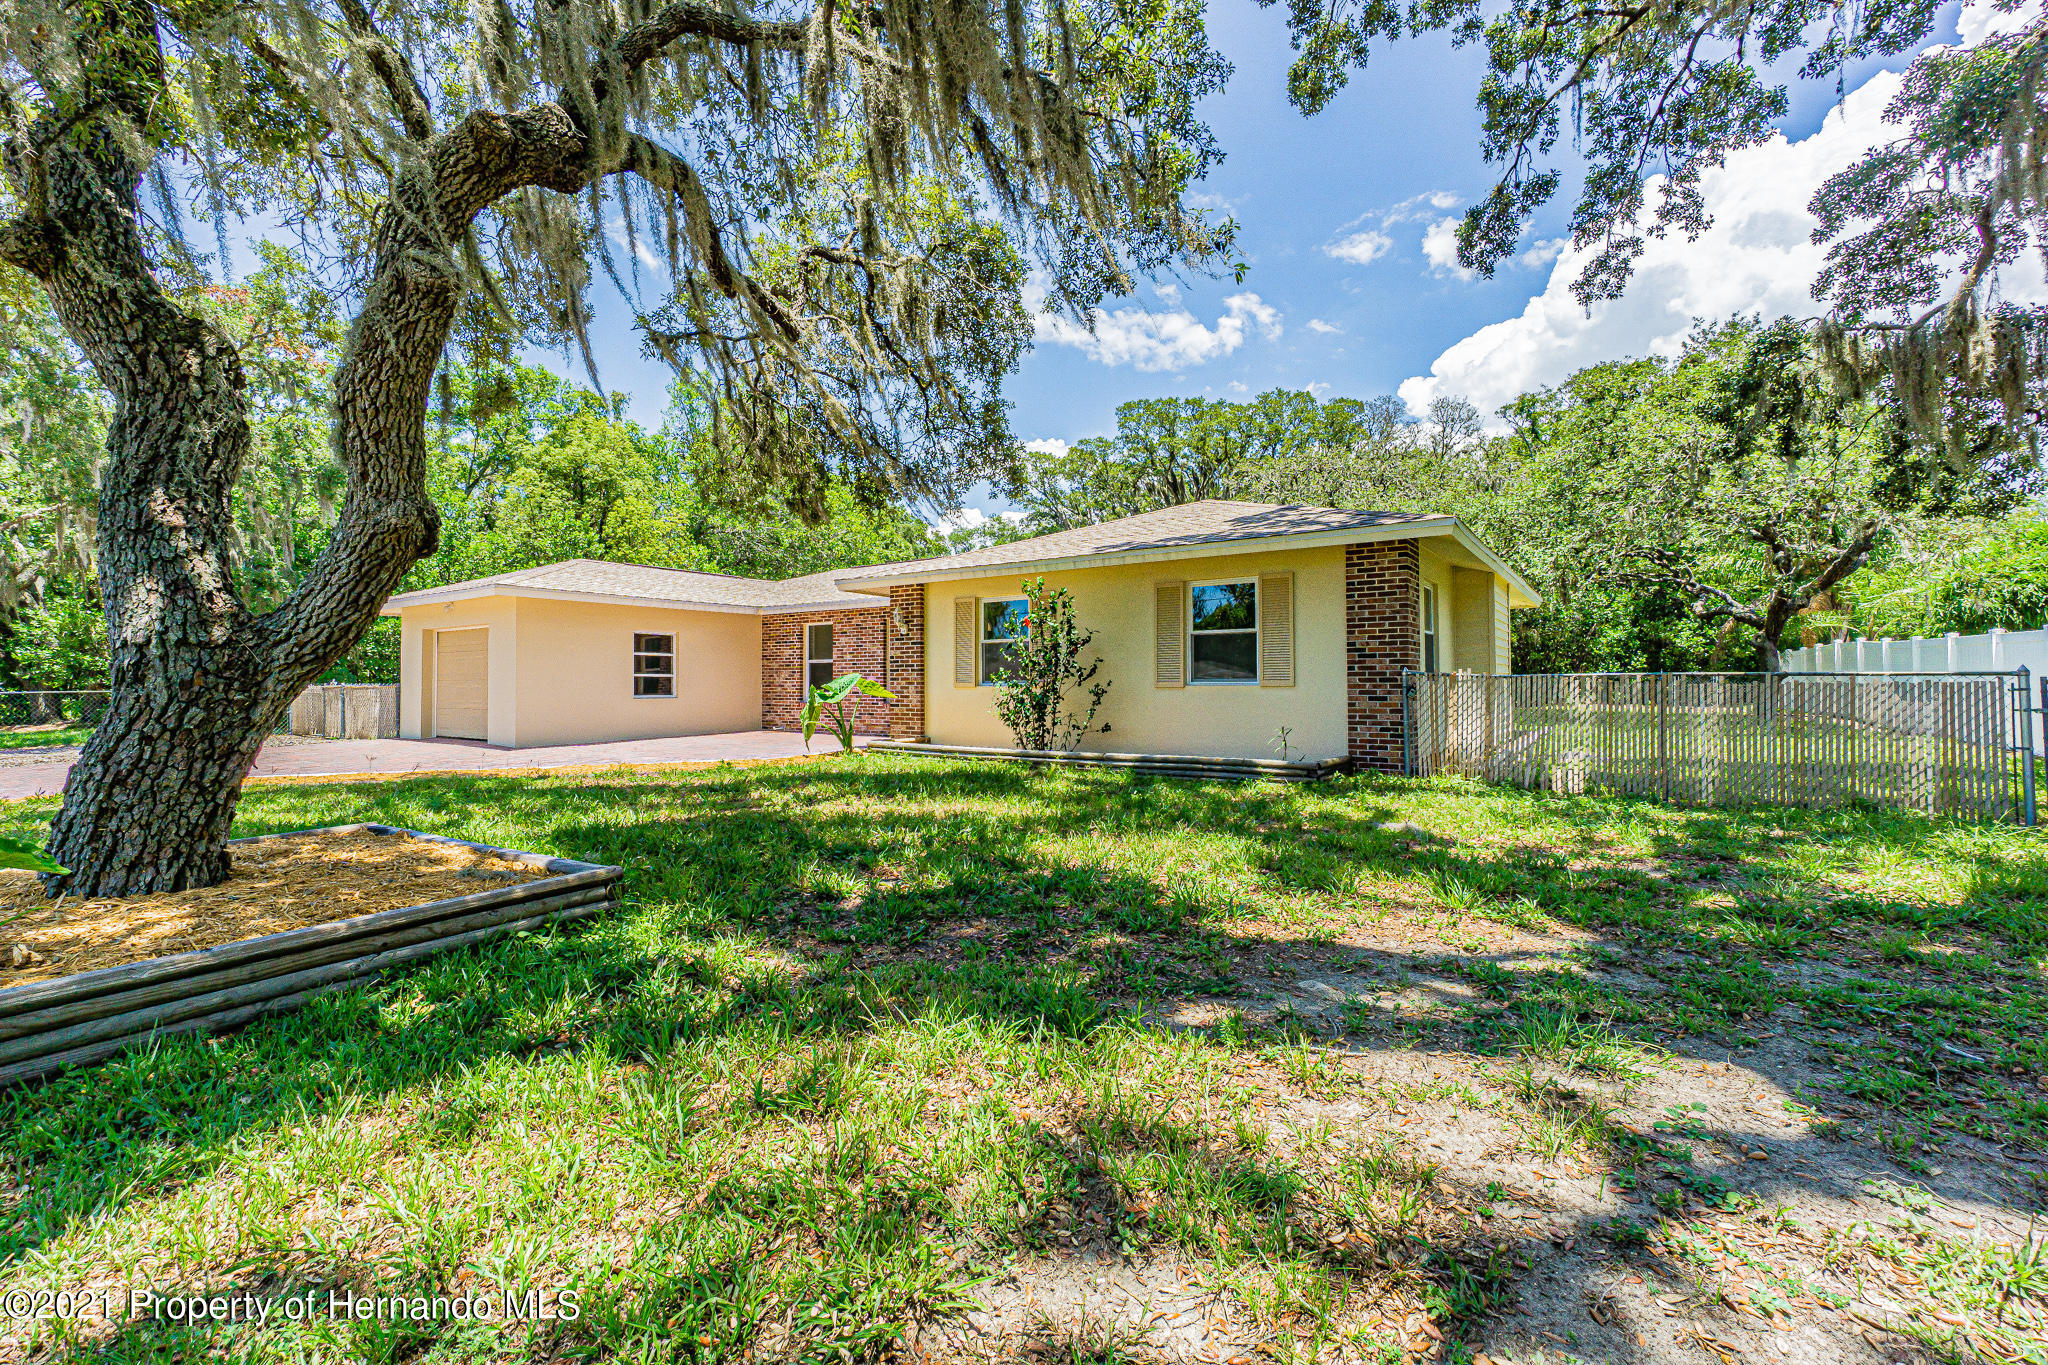 Details for 442 Tryon Circle, Spring Hill, FL 34606